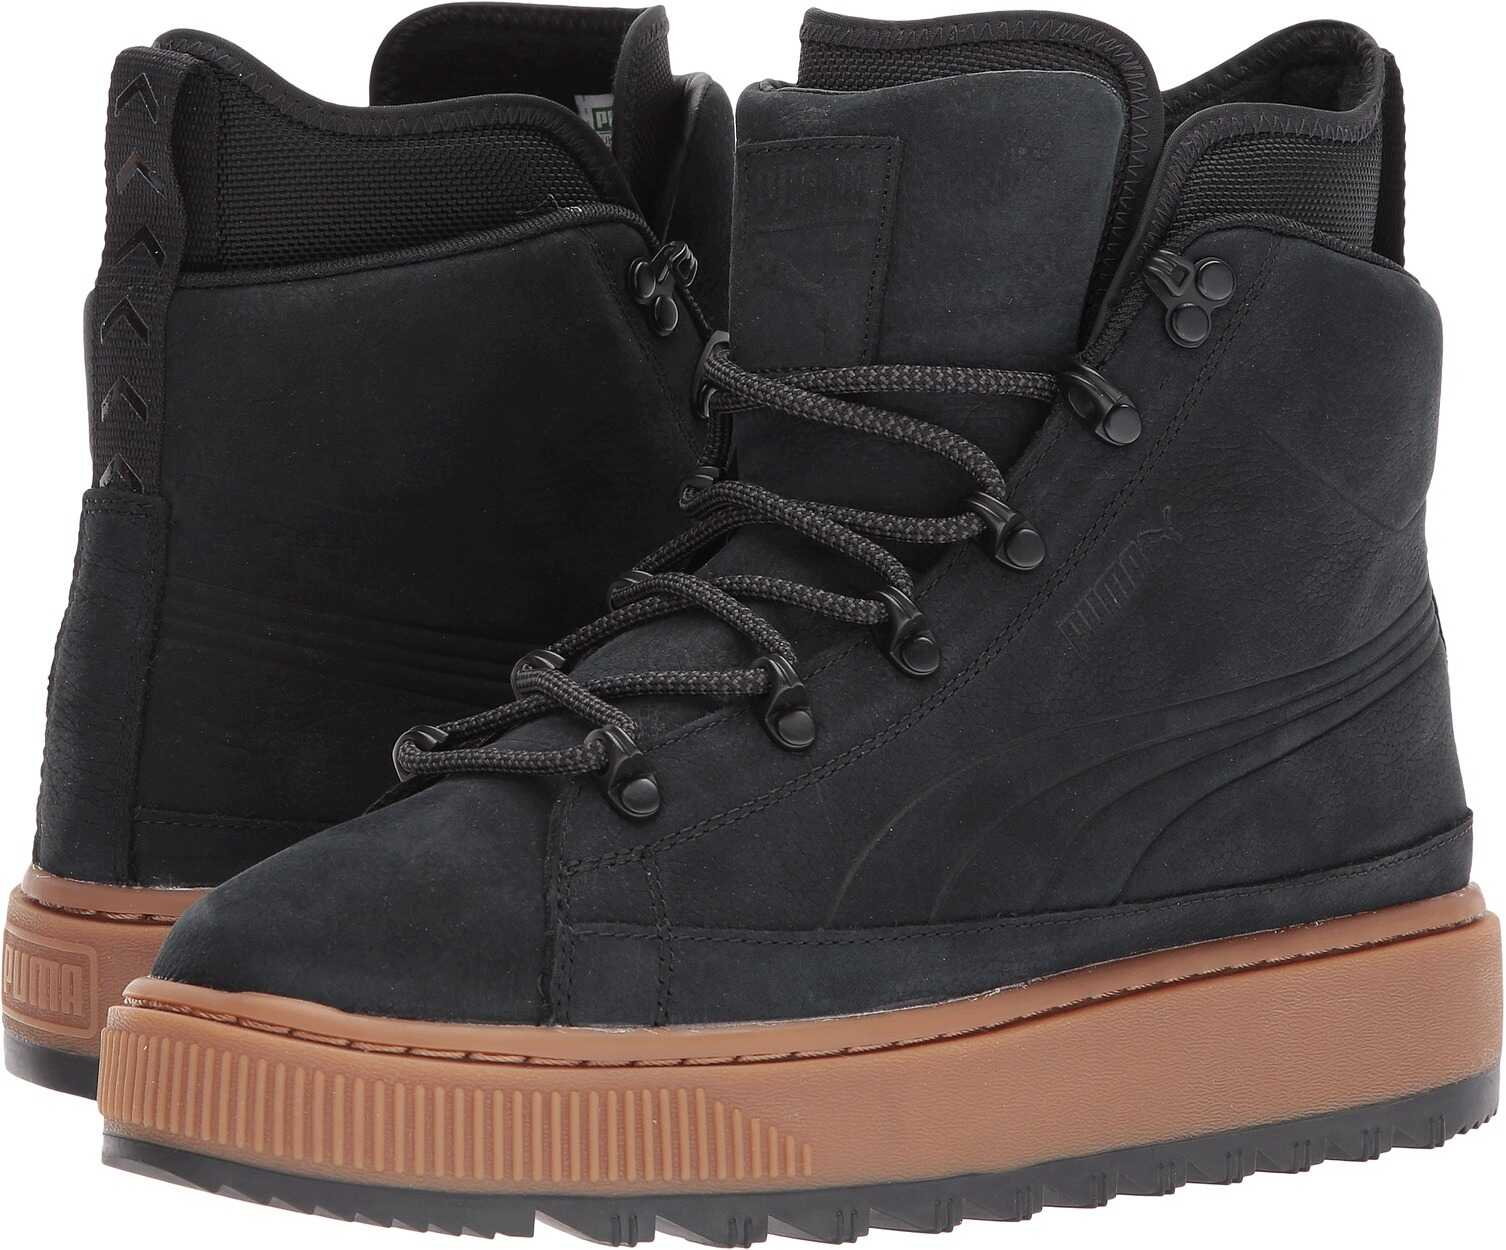 PUMA The Ren Boot NBK PUMA Black